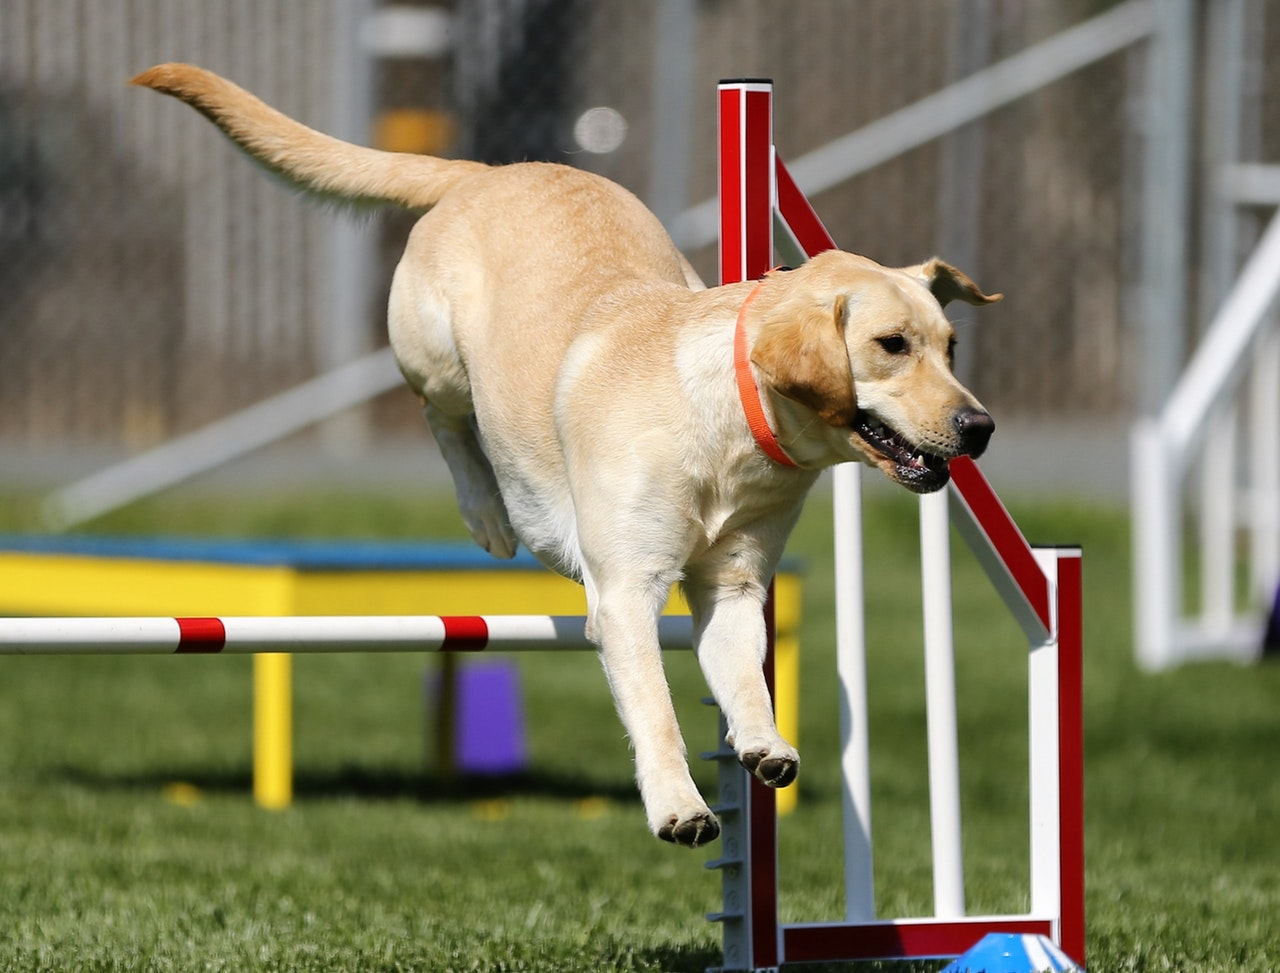 An in-depth review of the best dog agility equipment available in 2018.